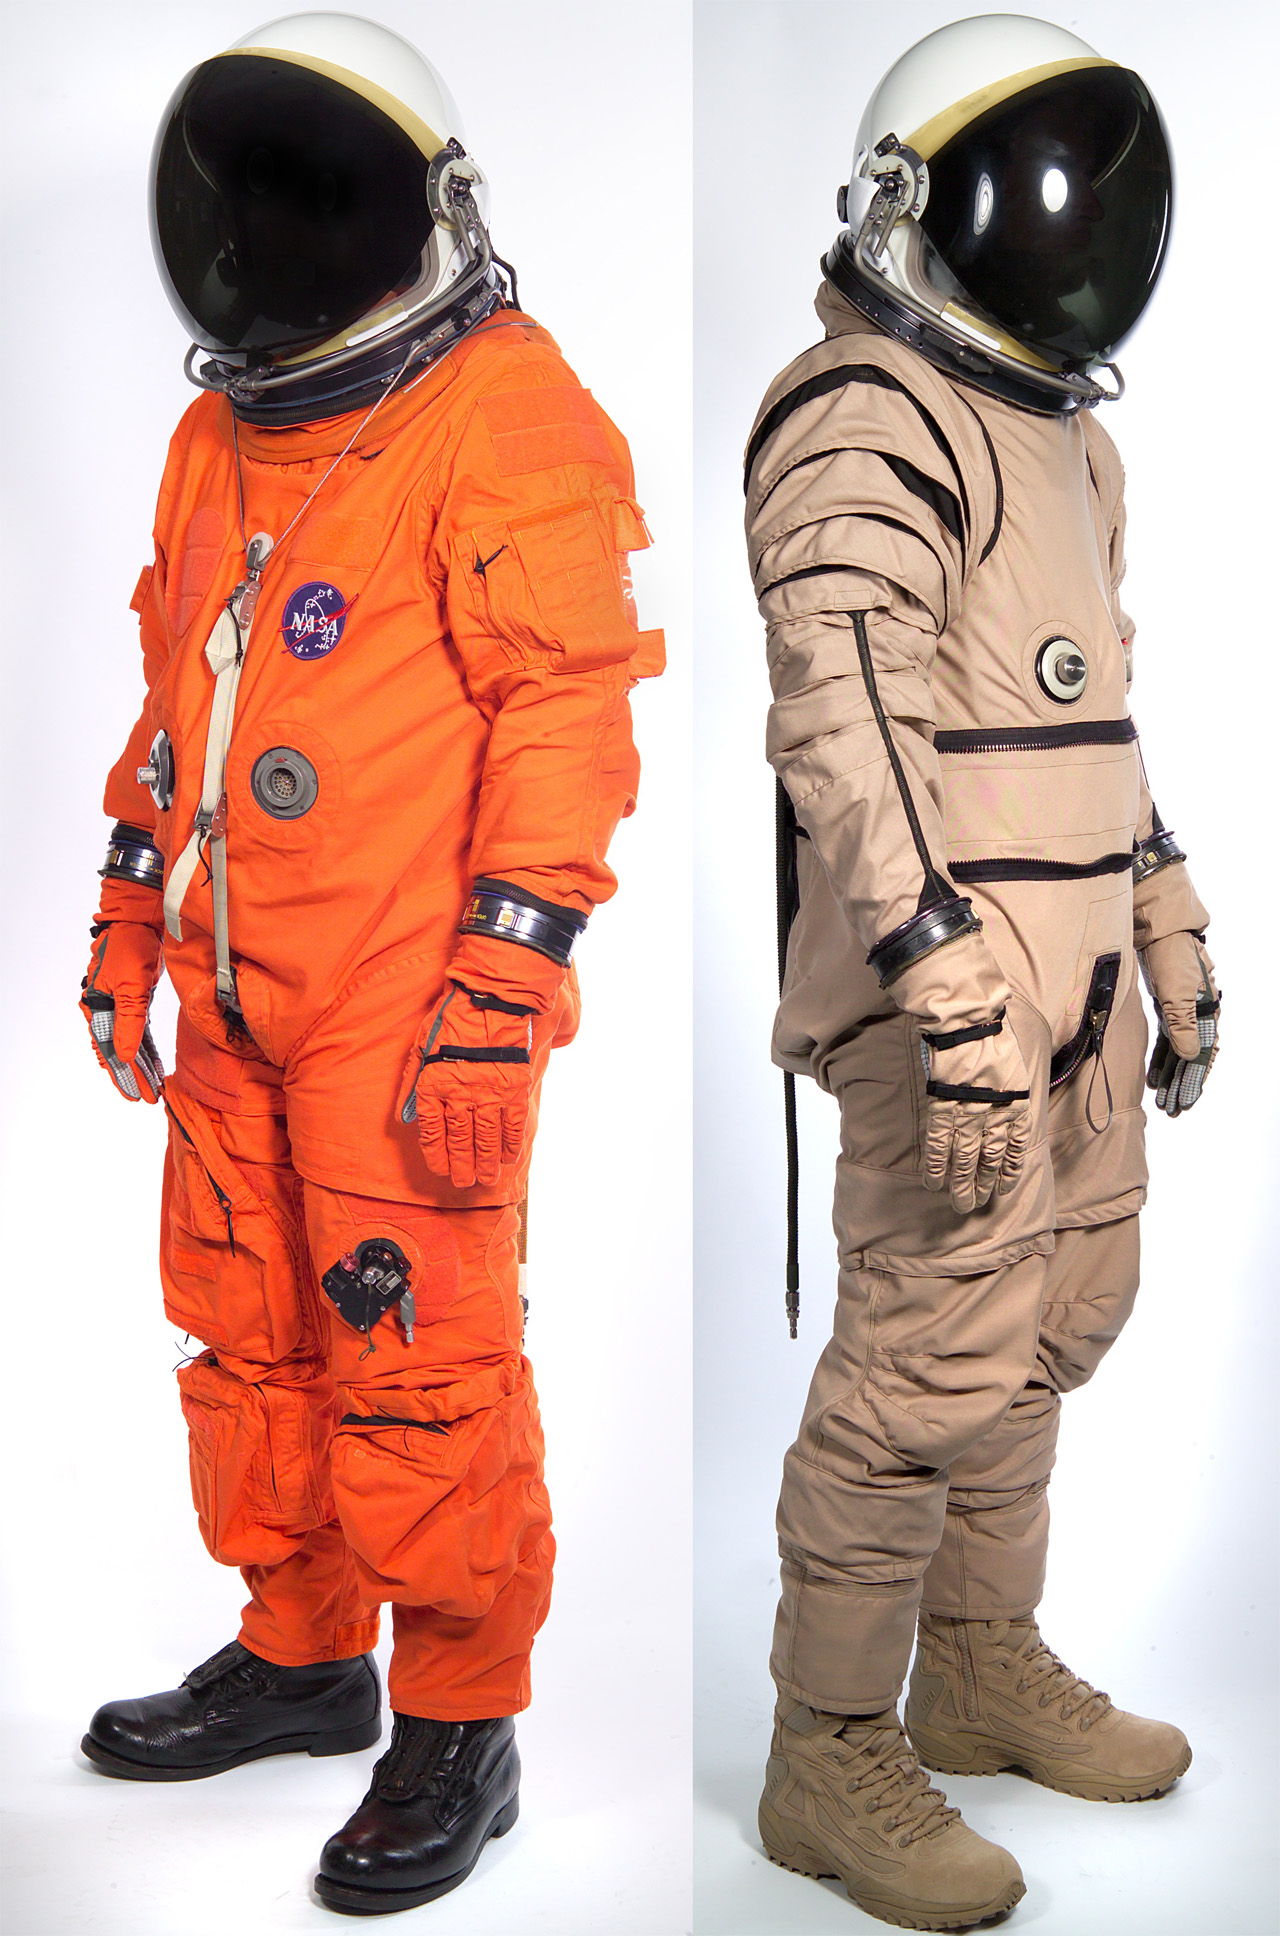 nasa space suits models - photo #30